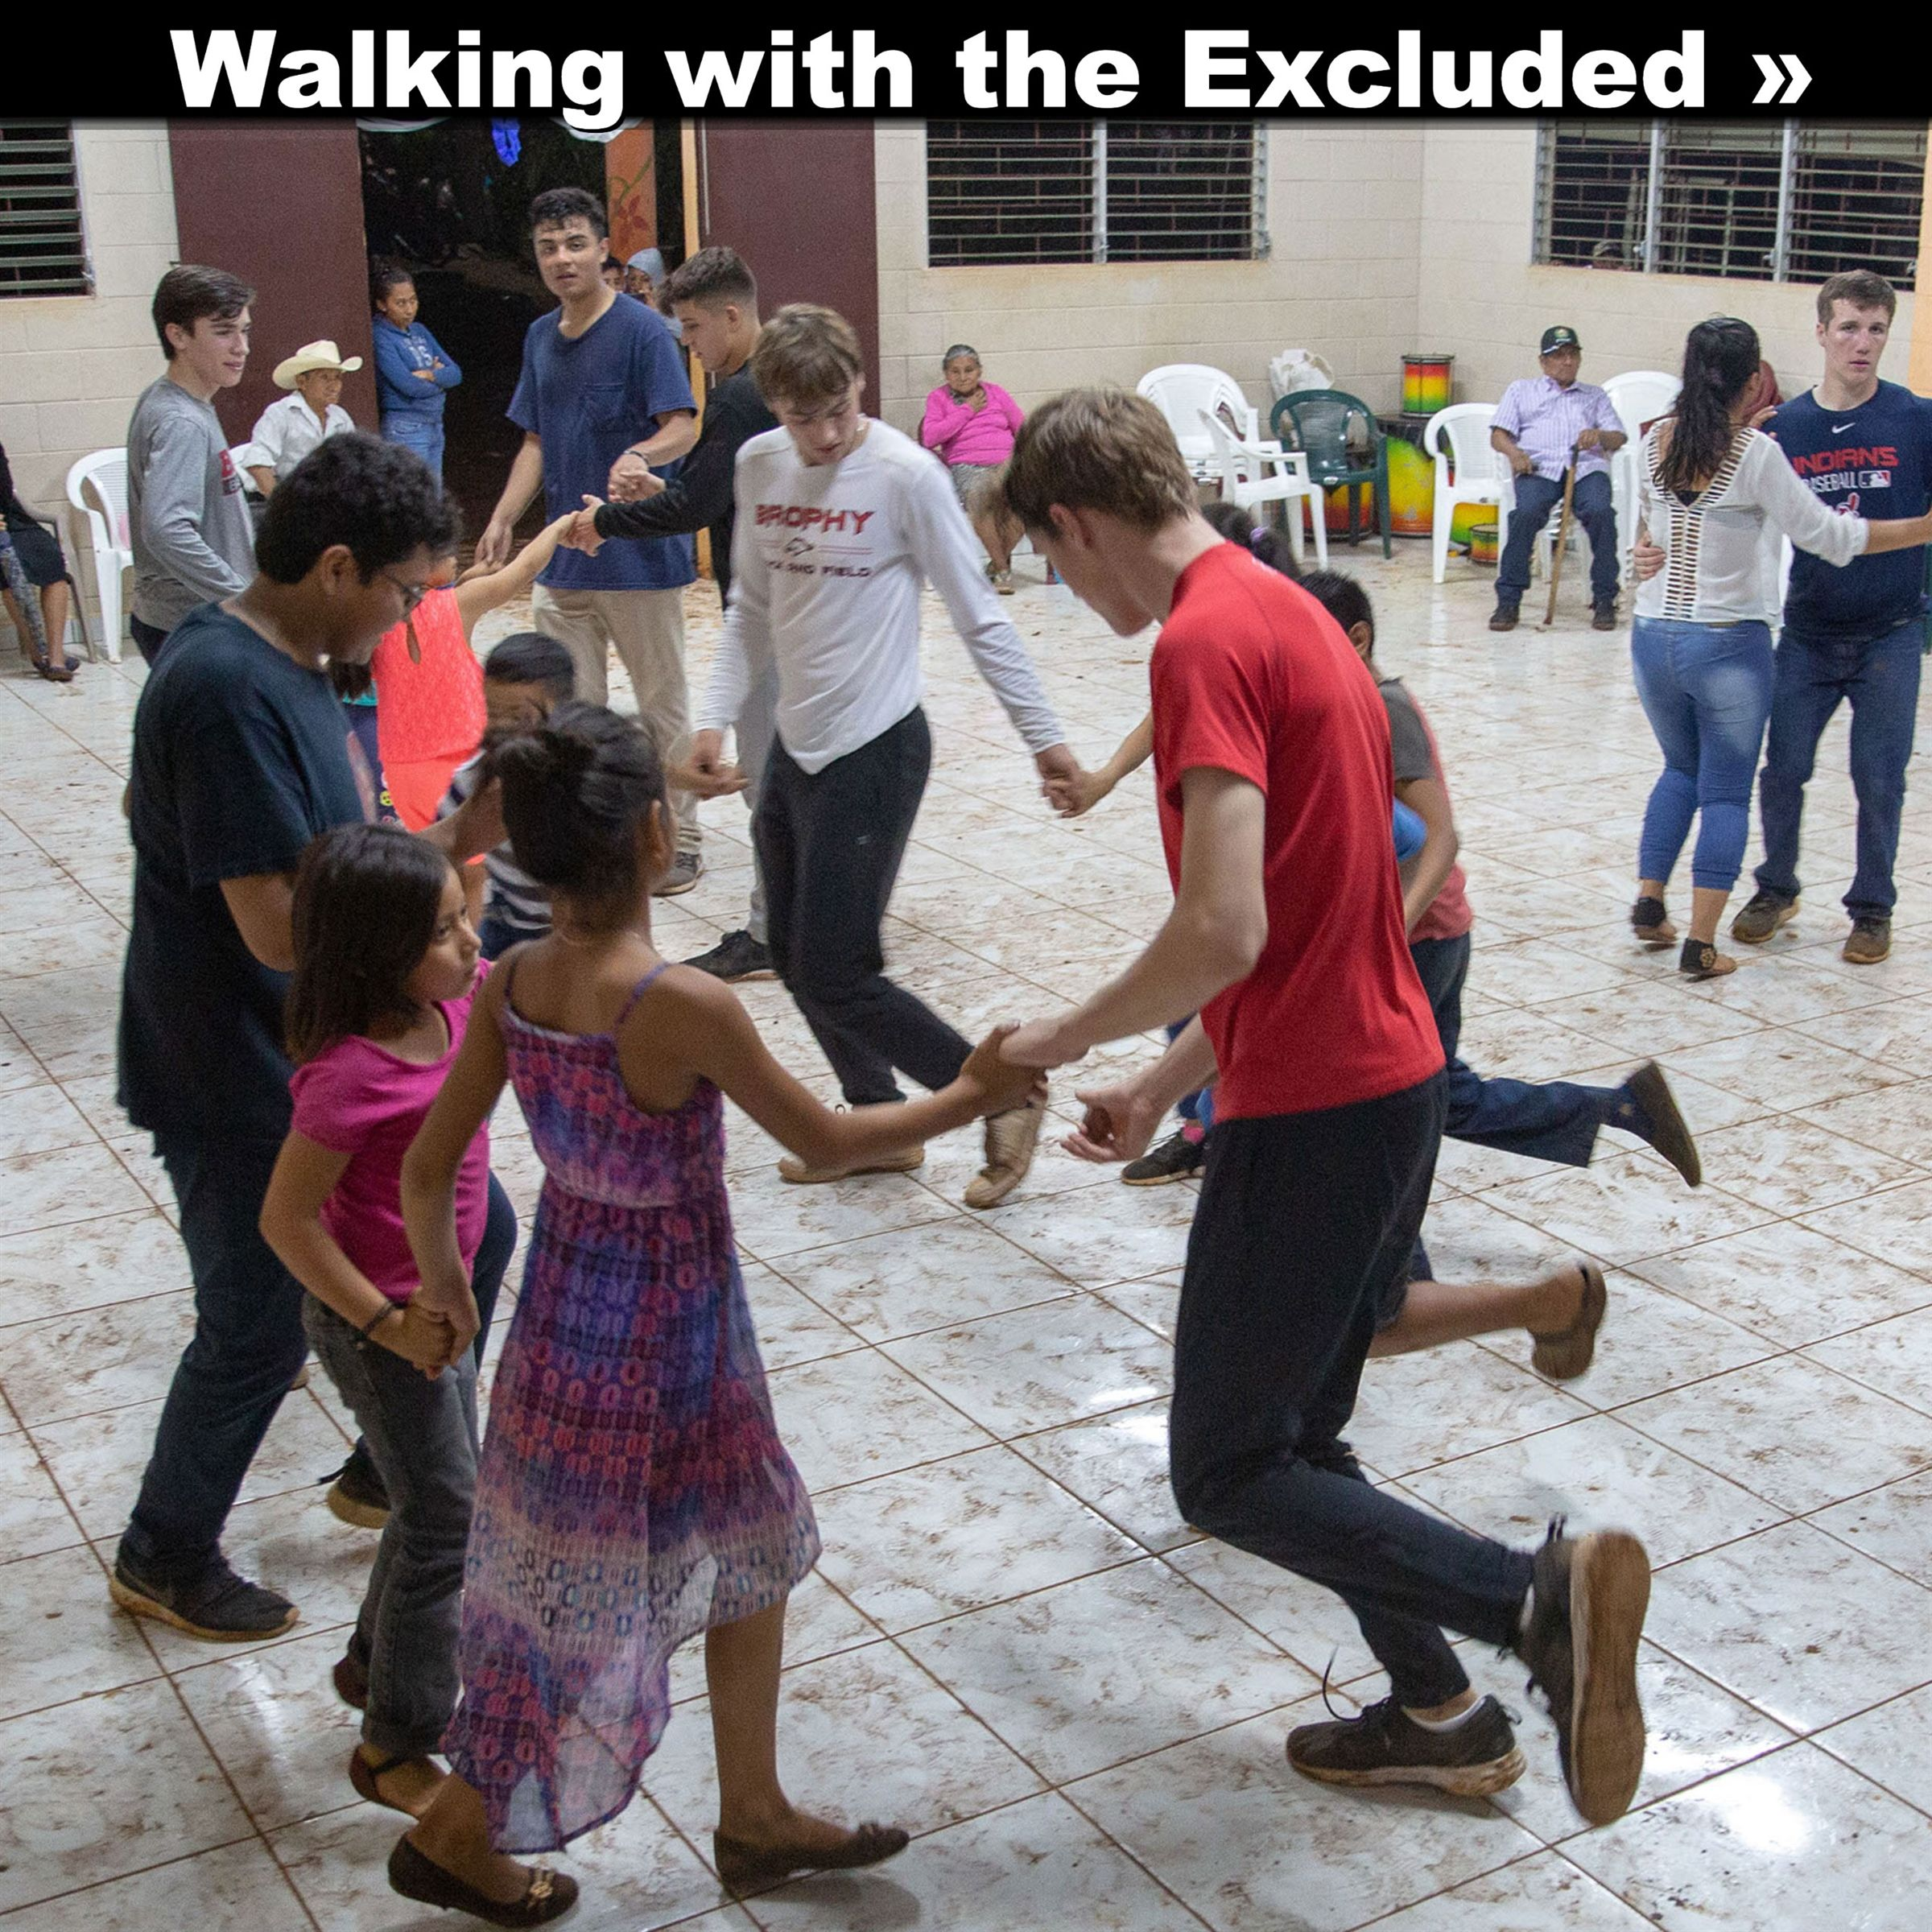 Walking with the Excluded